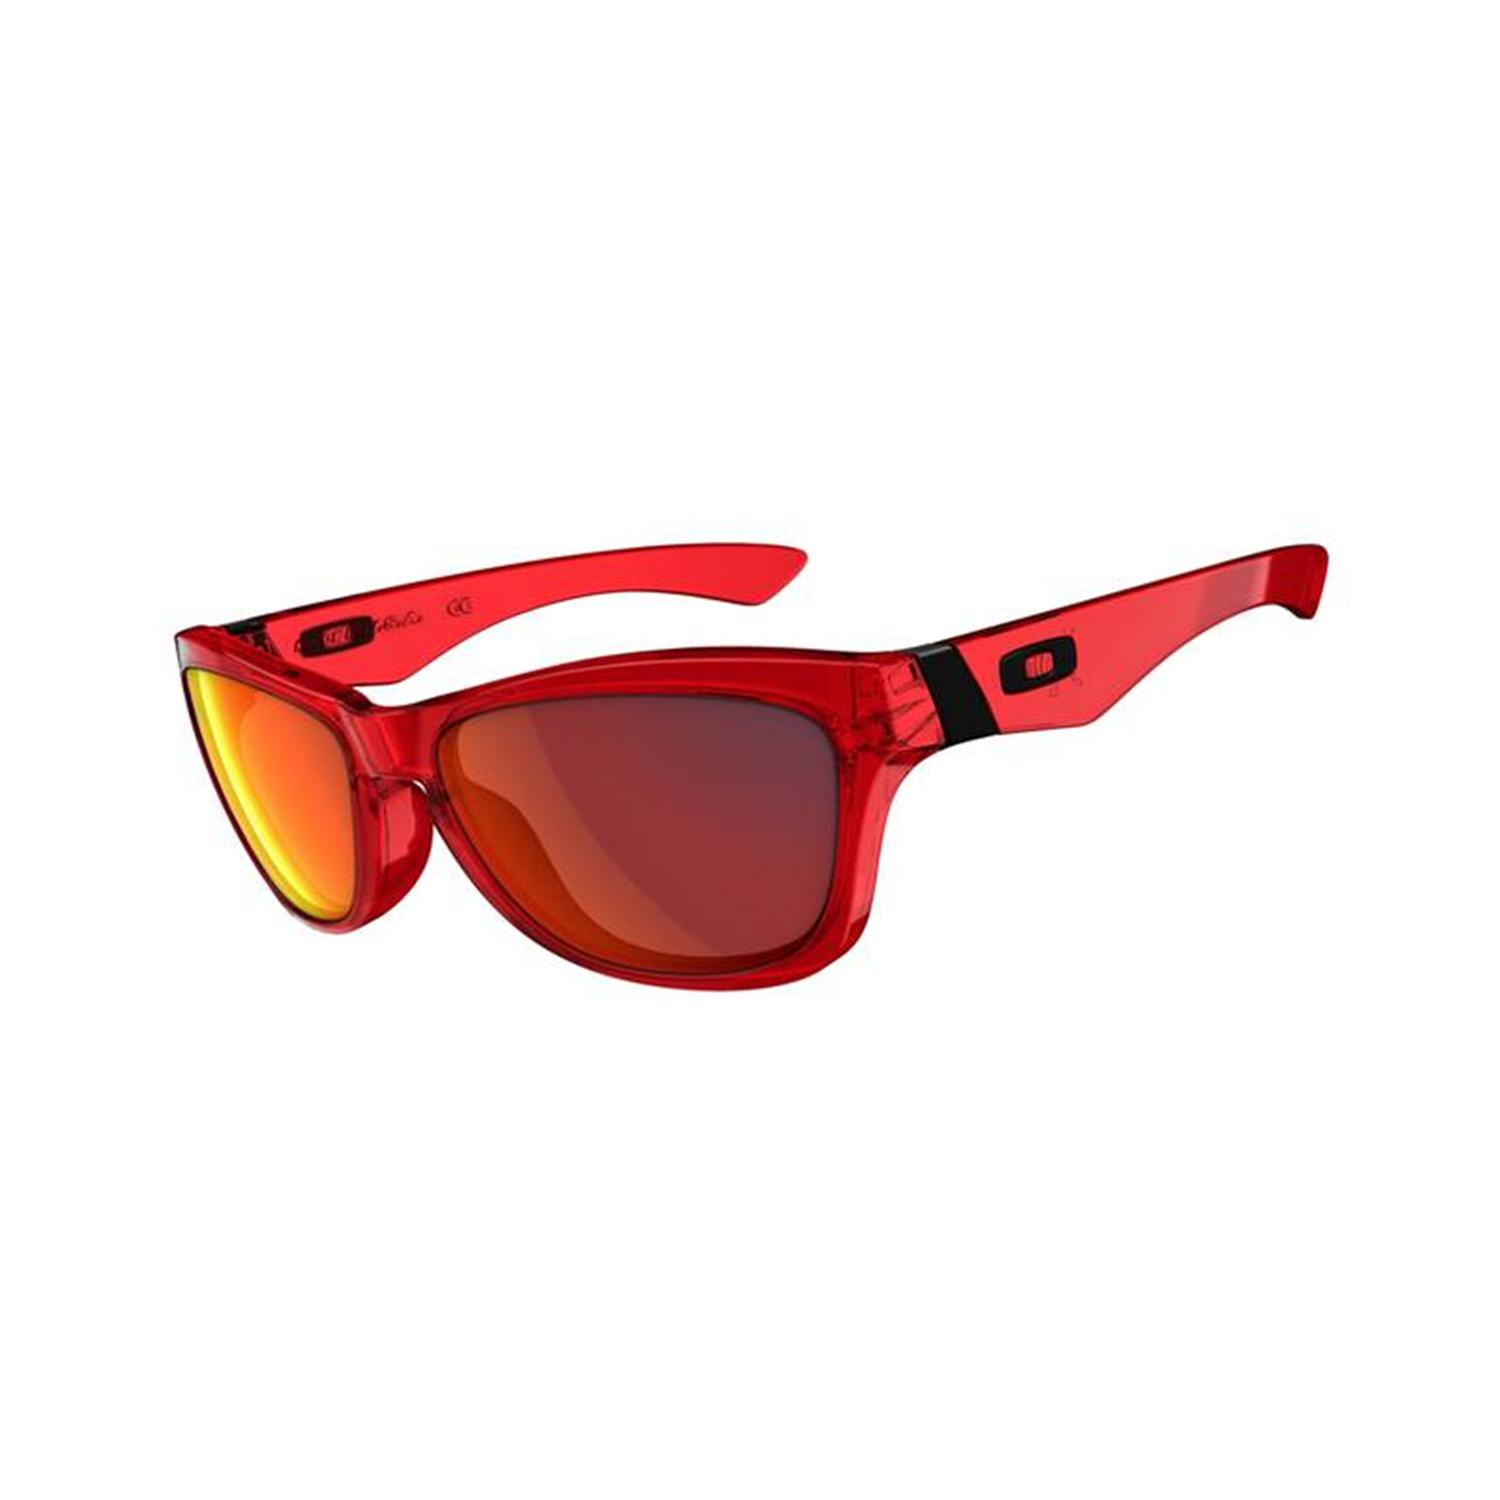 2051a804045 Oakley Prescription Sunglasses Boots « Heritage Malta